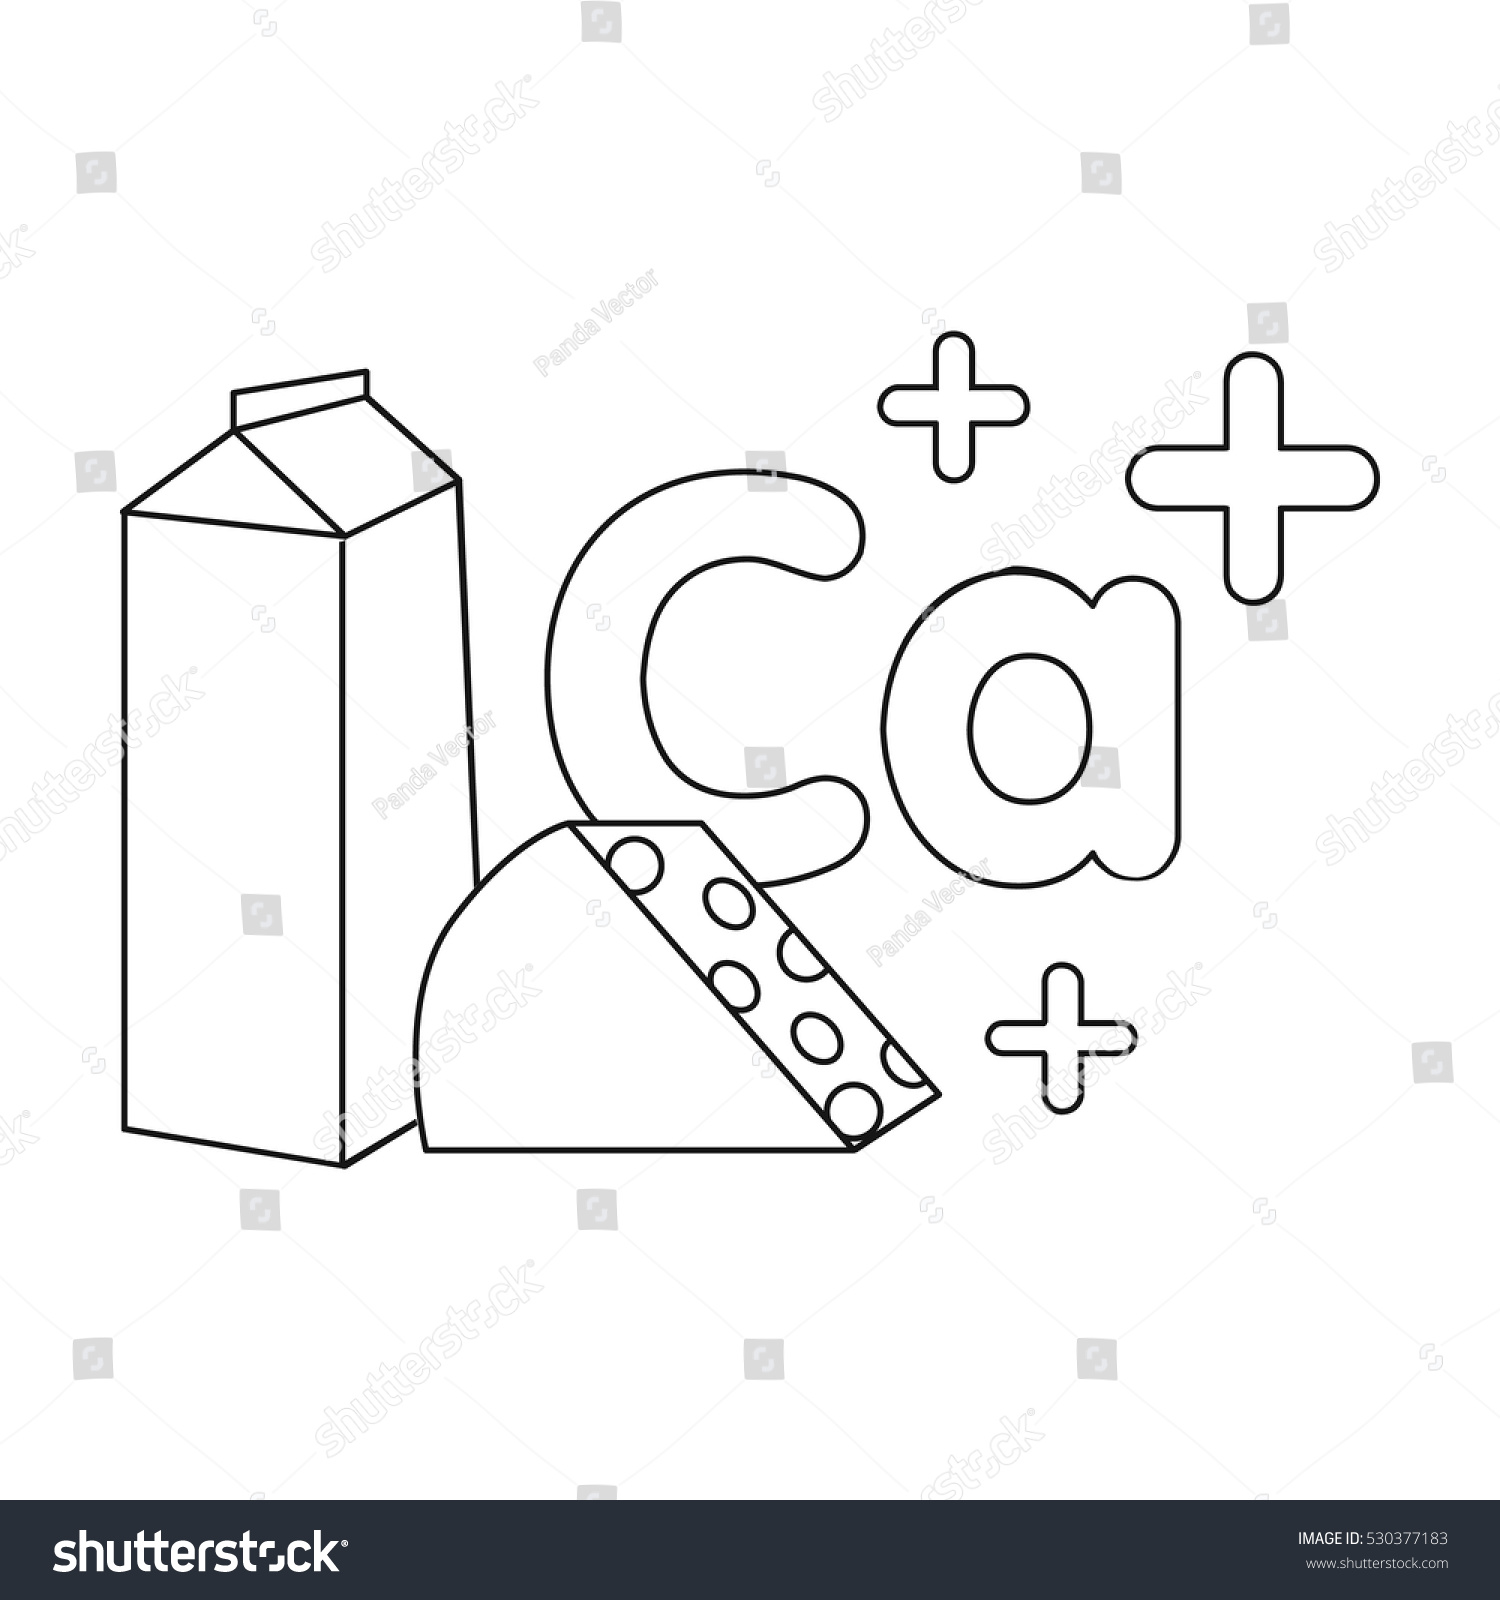 Sources calcium icon outline style isolated stock vector 530377183 sources of calcium icon in outline style isolated on white background dental care symbol stock buycottarizona Choice Image